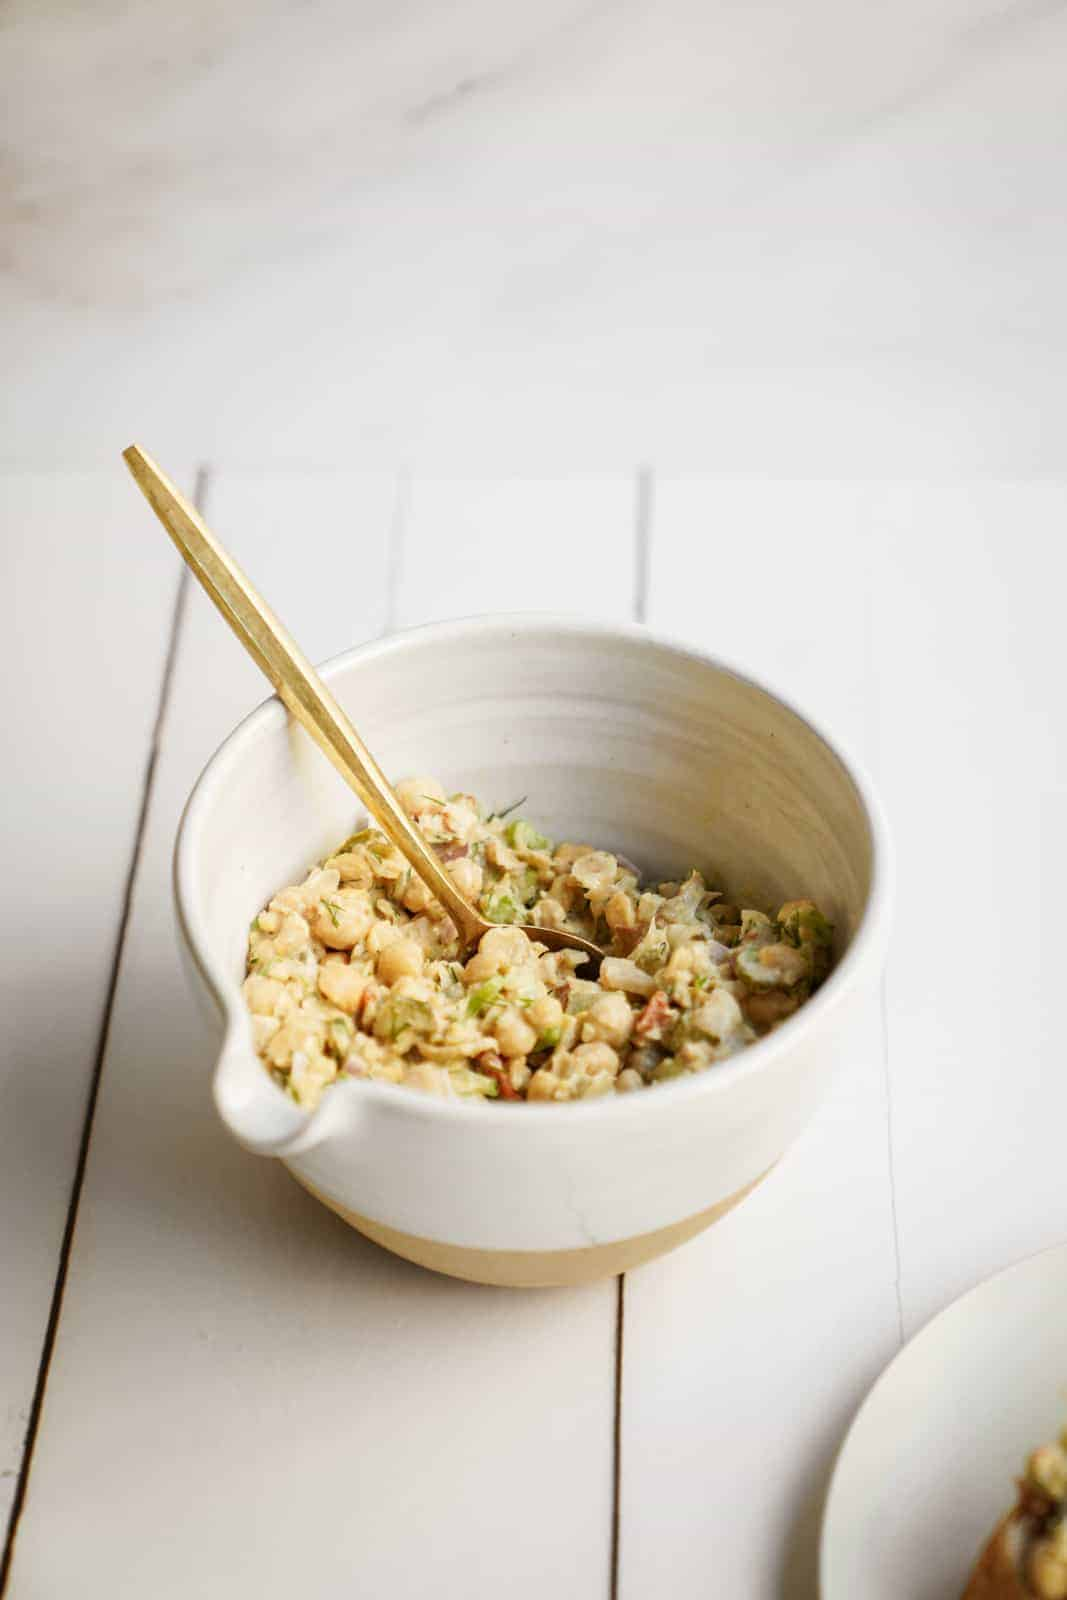 A big bowl of Mashed Chickpea Salad with a serving spoon